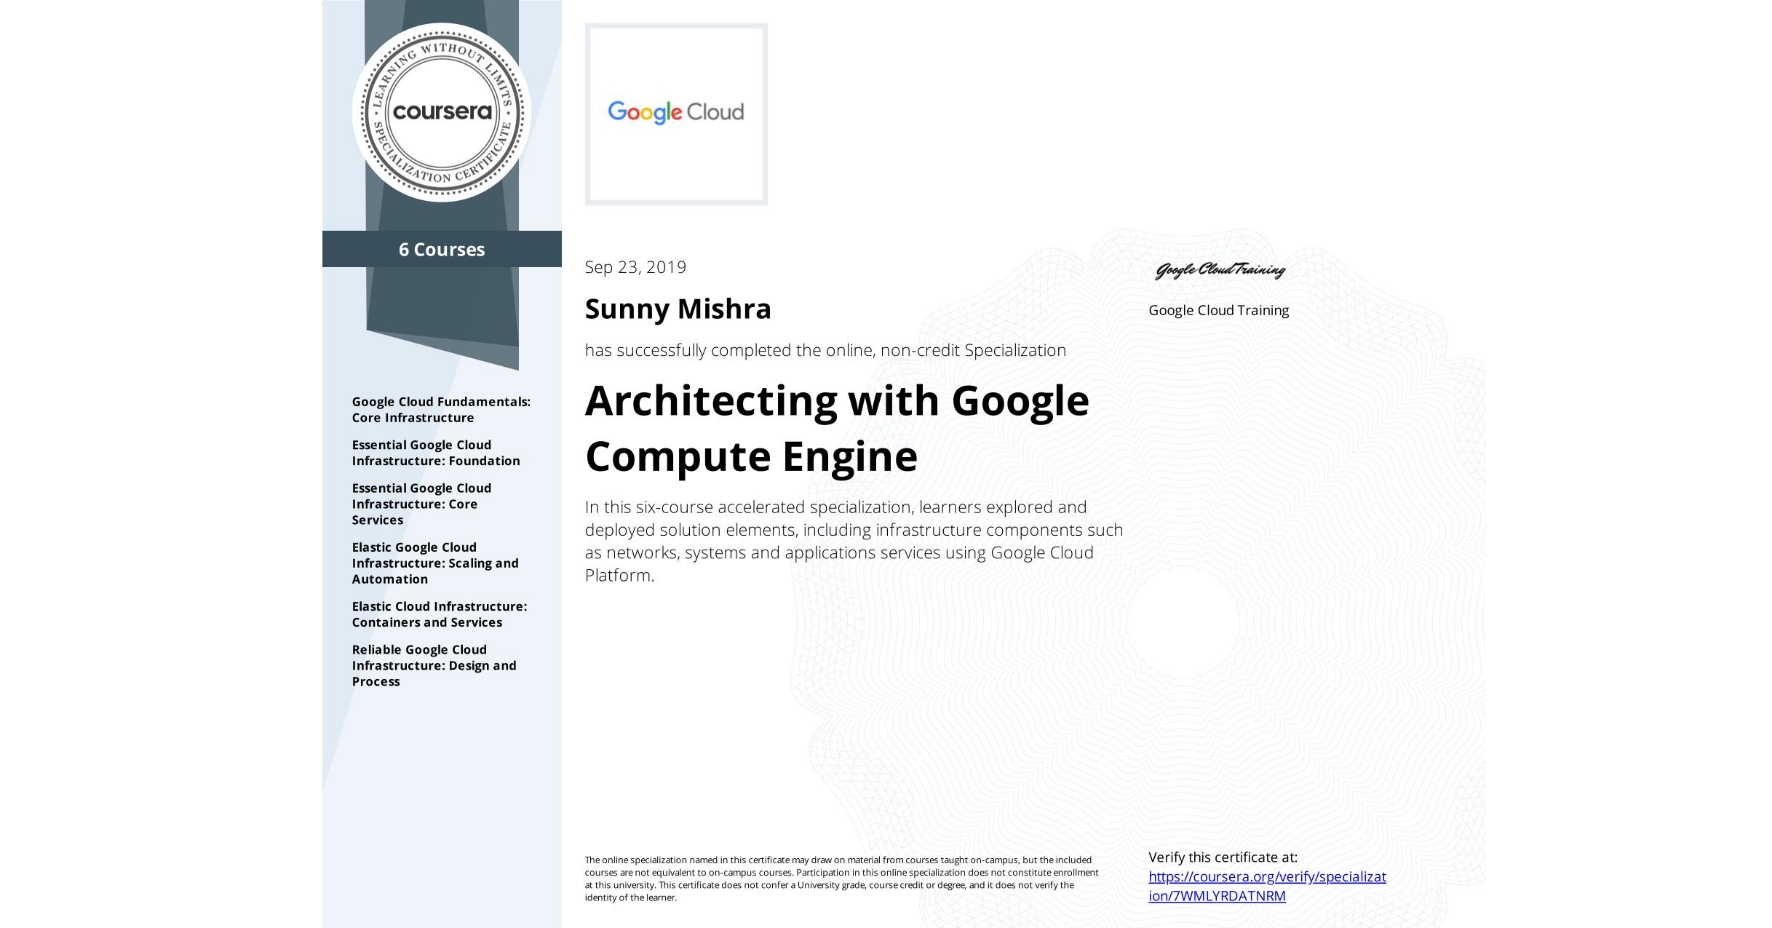 View certificate for Sunny Mishra, Architecting with Google Compute Engine, offered through Coursera. In this six-course accelerated specialization, learners explored and deployed solution elements, including infrastructure components such as networks, systems and applications services using Google Cloud Platform.